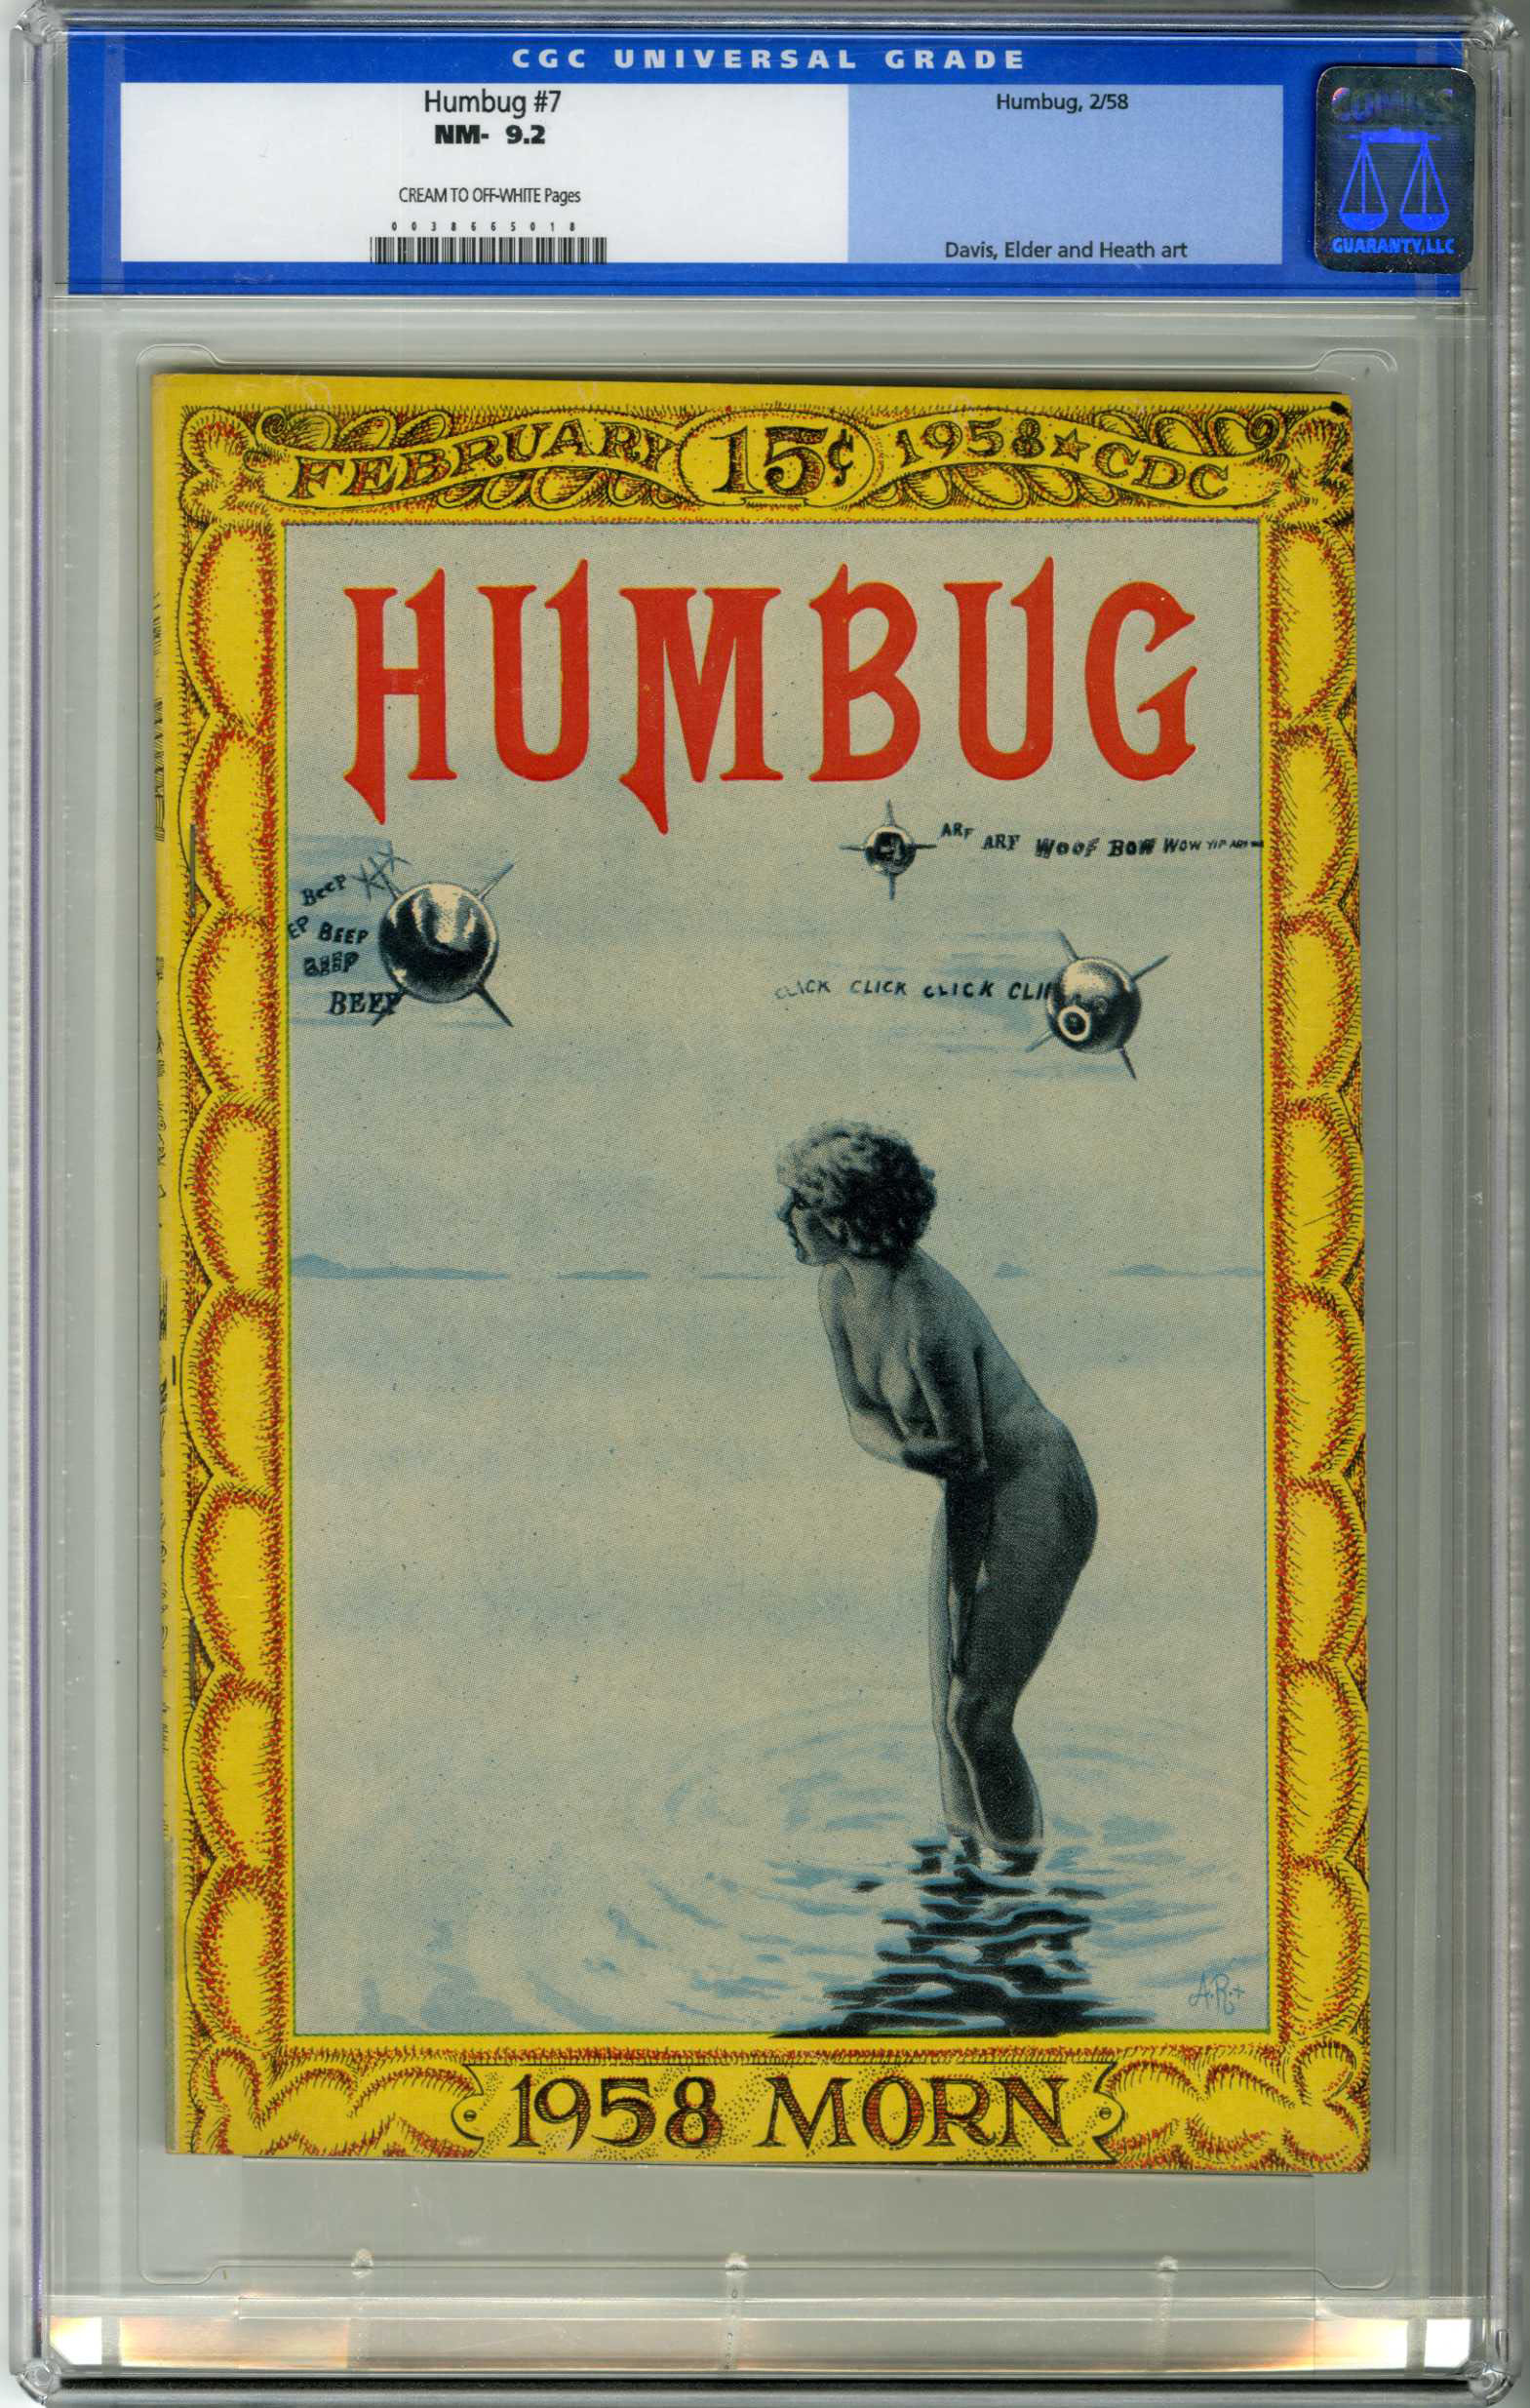 HUMBUG #7 (1958) CGC NM- 9.2 COW Pages / DAVIS, ELDER, HEATH ART